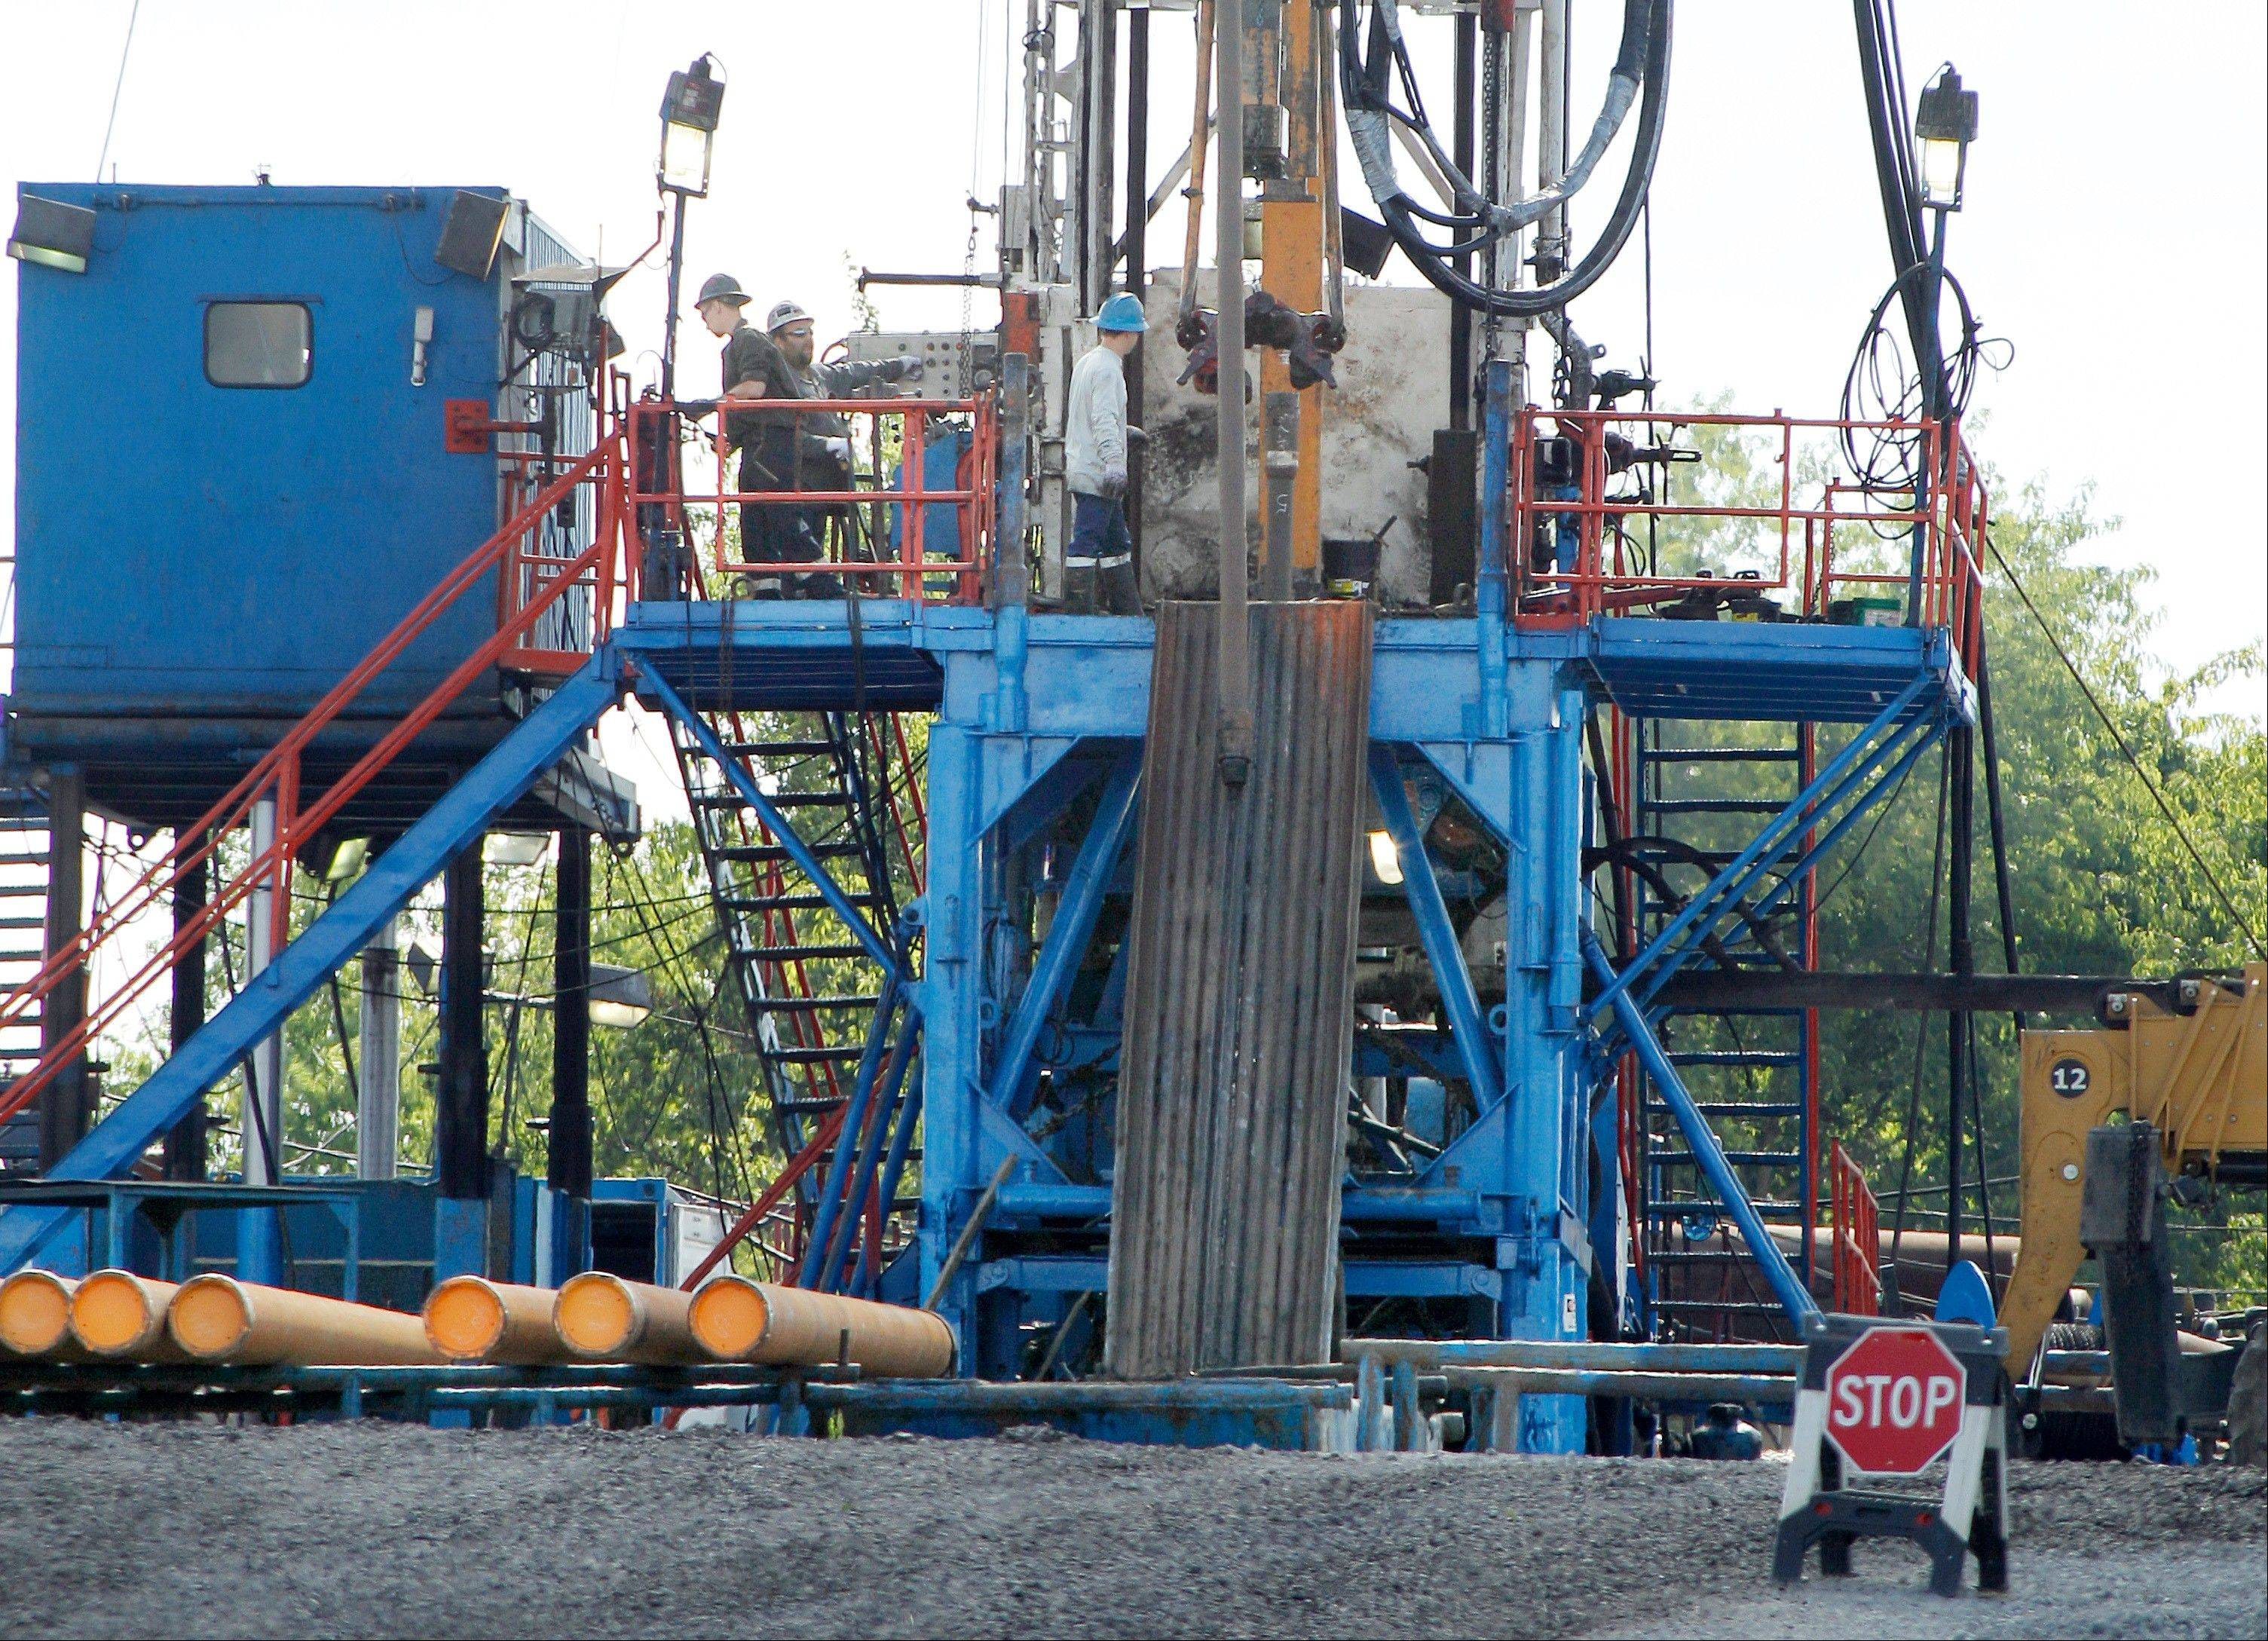 A crew works on a drilling rig at a well site for shale based natural gas in Zelienople, Pa. .S. consumer prices rose slightly in May 2013, as higher energy costs were partly offset by cheaper food.